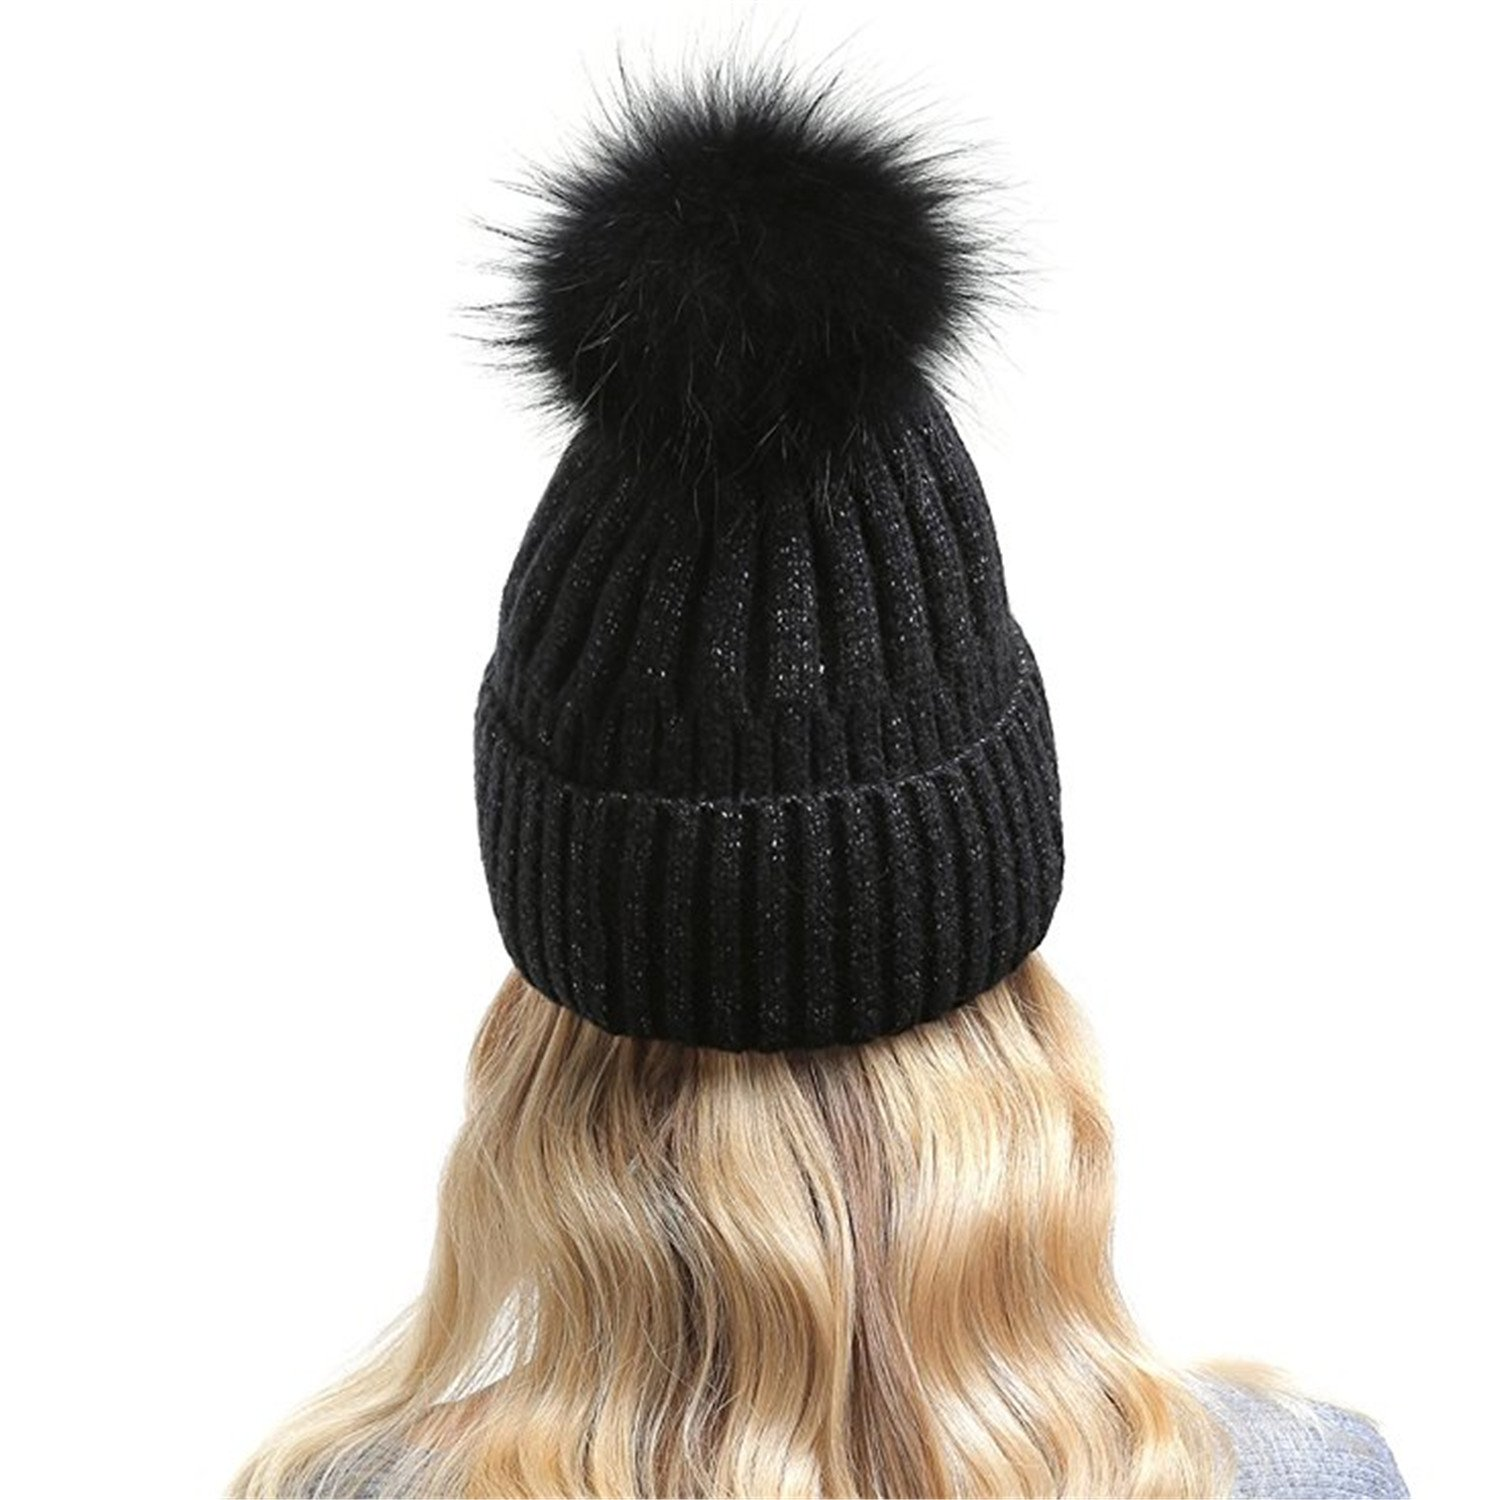 db8e800f0b0 Qhome Winter Knitted Wool Beanies Hats For Women Spring Autumn Hat With Real  Raccoon Fur Pompom New Fashion Cashmere Caps at Amazon Women s Clothing  store